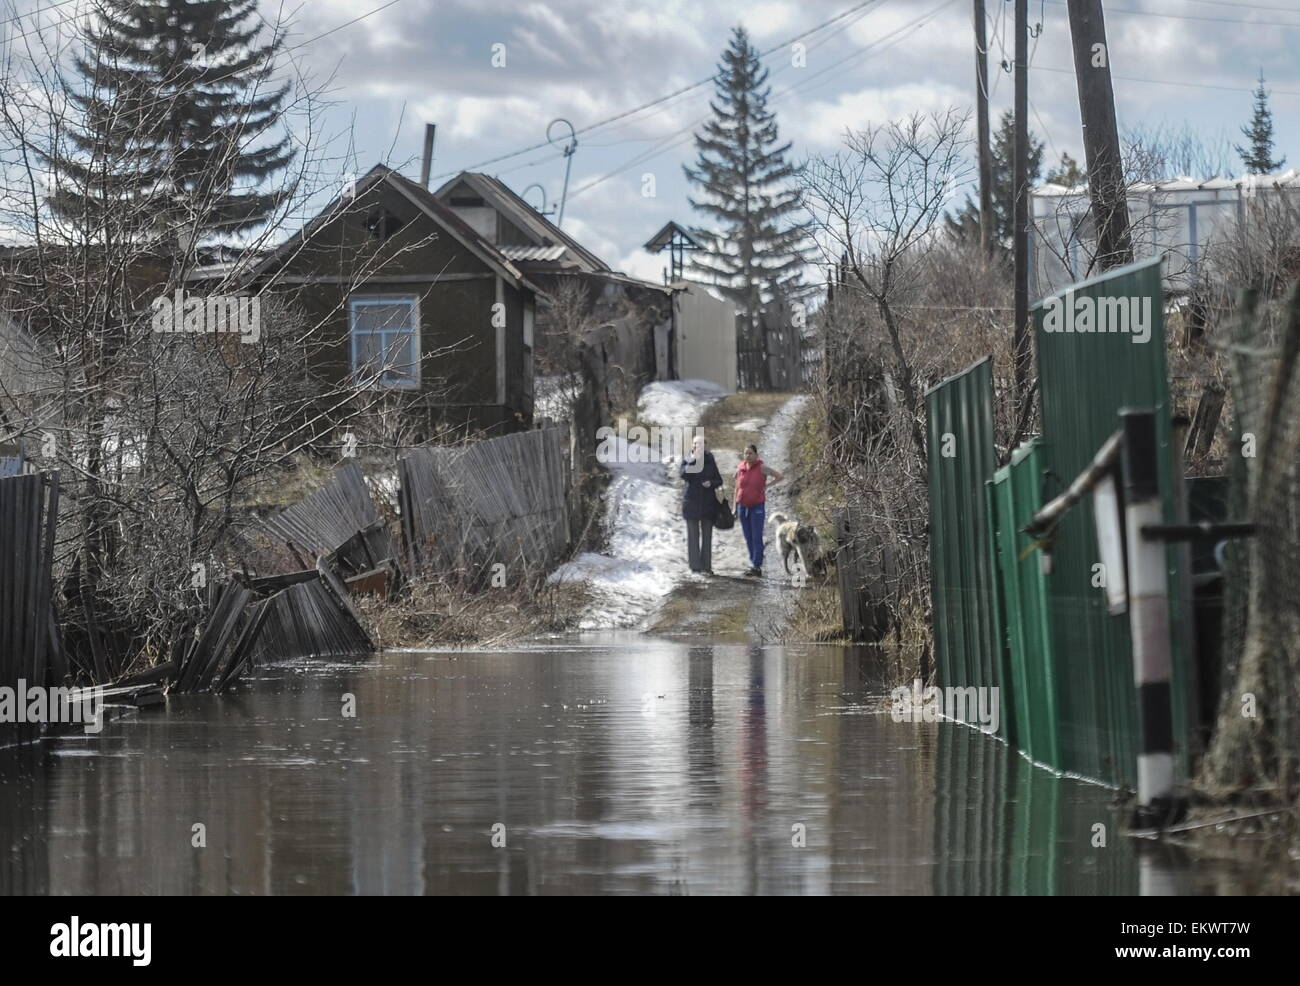 Novosibirsk Region, Russia. 14th Apr, 2015. Dachas (summer houses) in a flooded area. The flooding occurred after - Stock Image